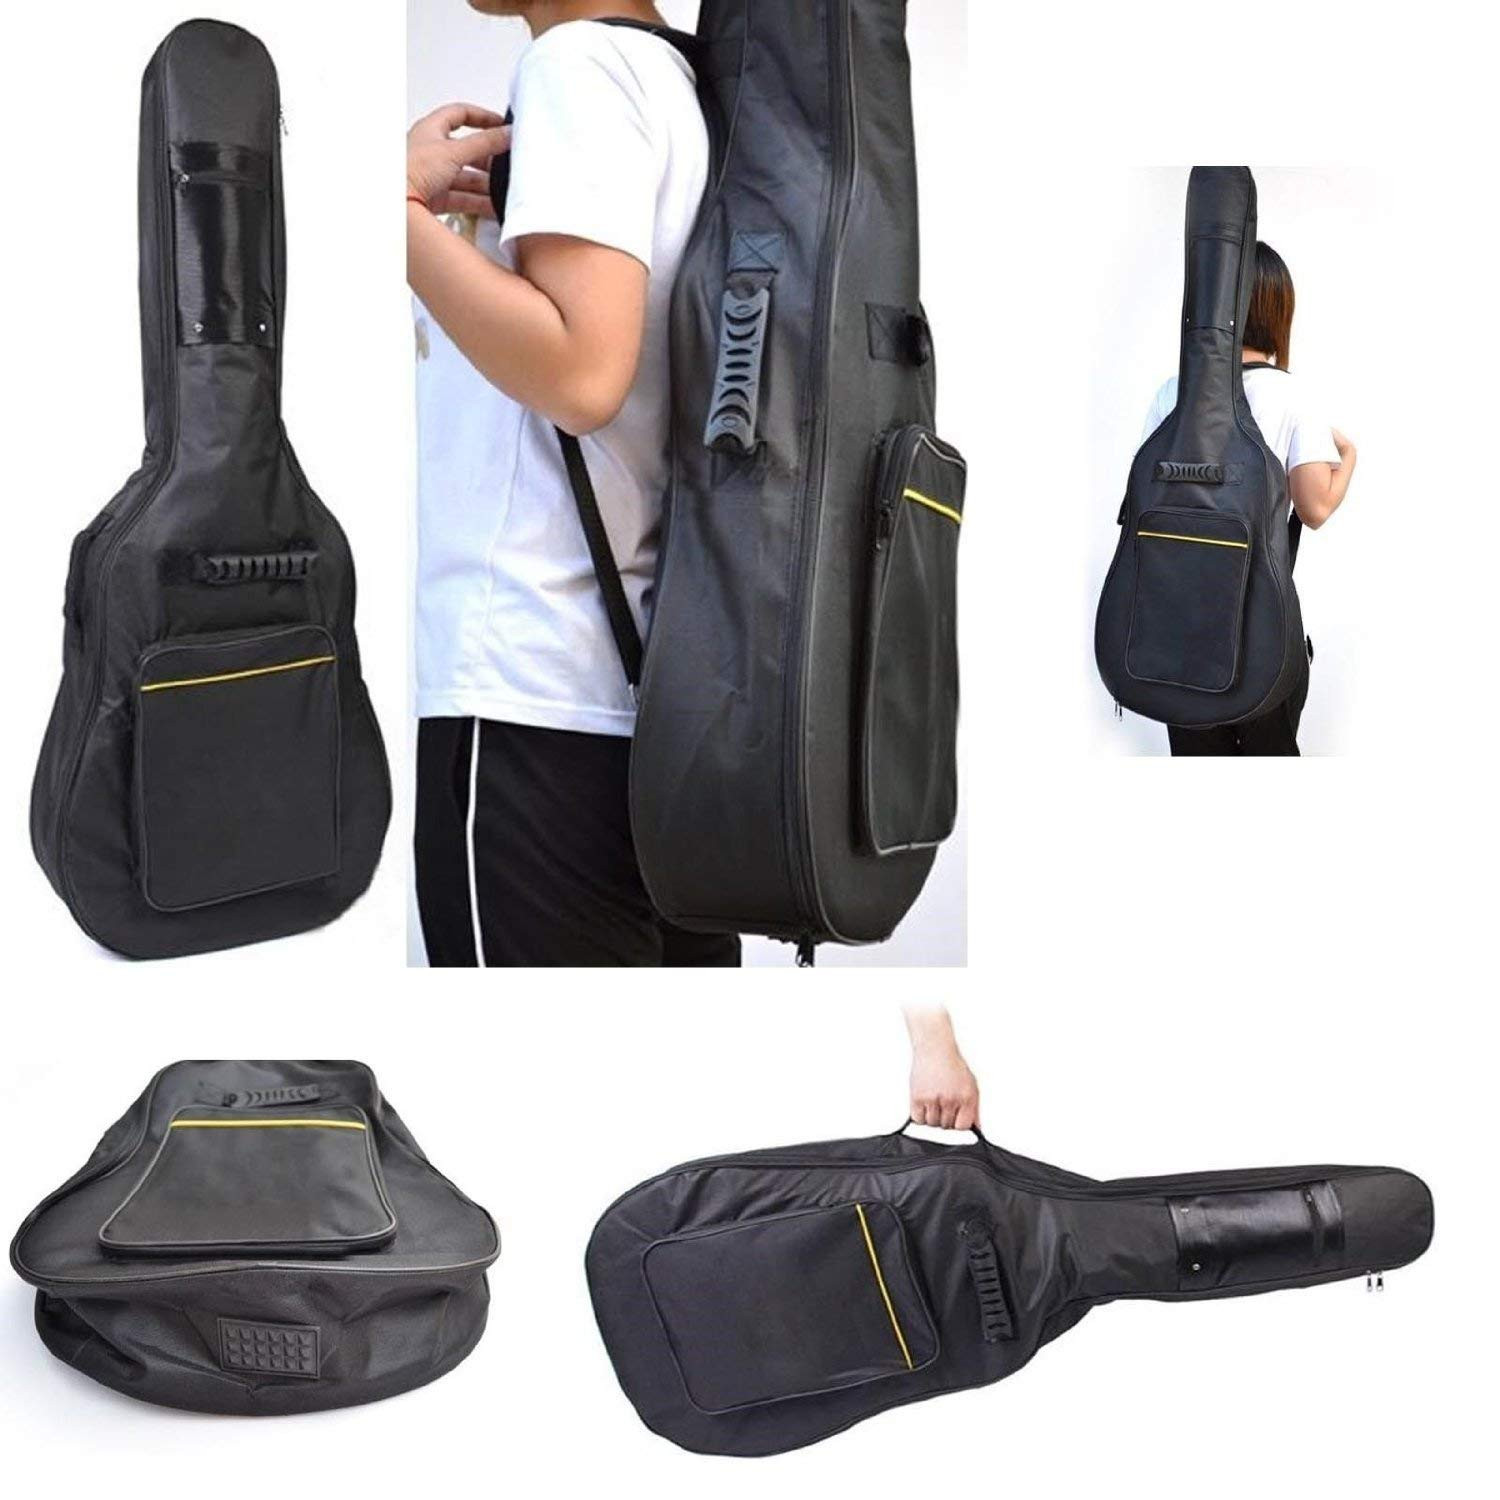 Full Size Padded Protective Classical Acoustic Guitar Back Bag Carry Case Black